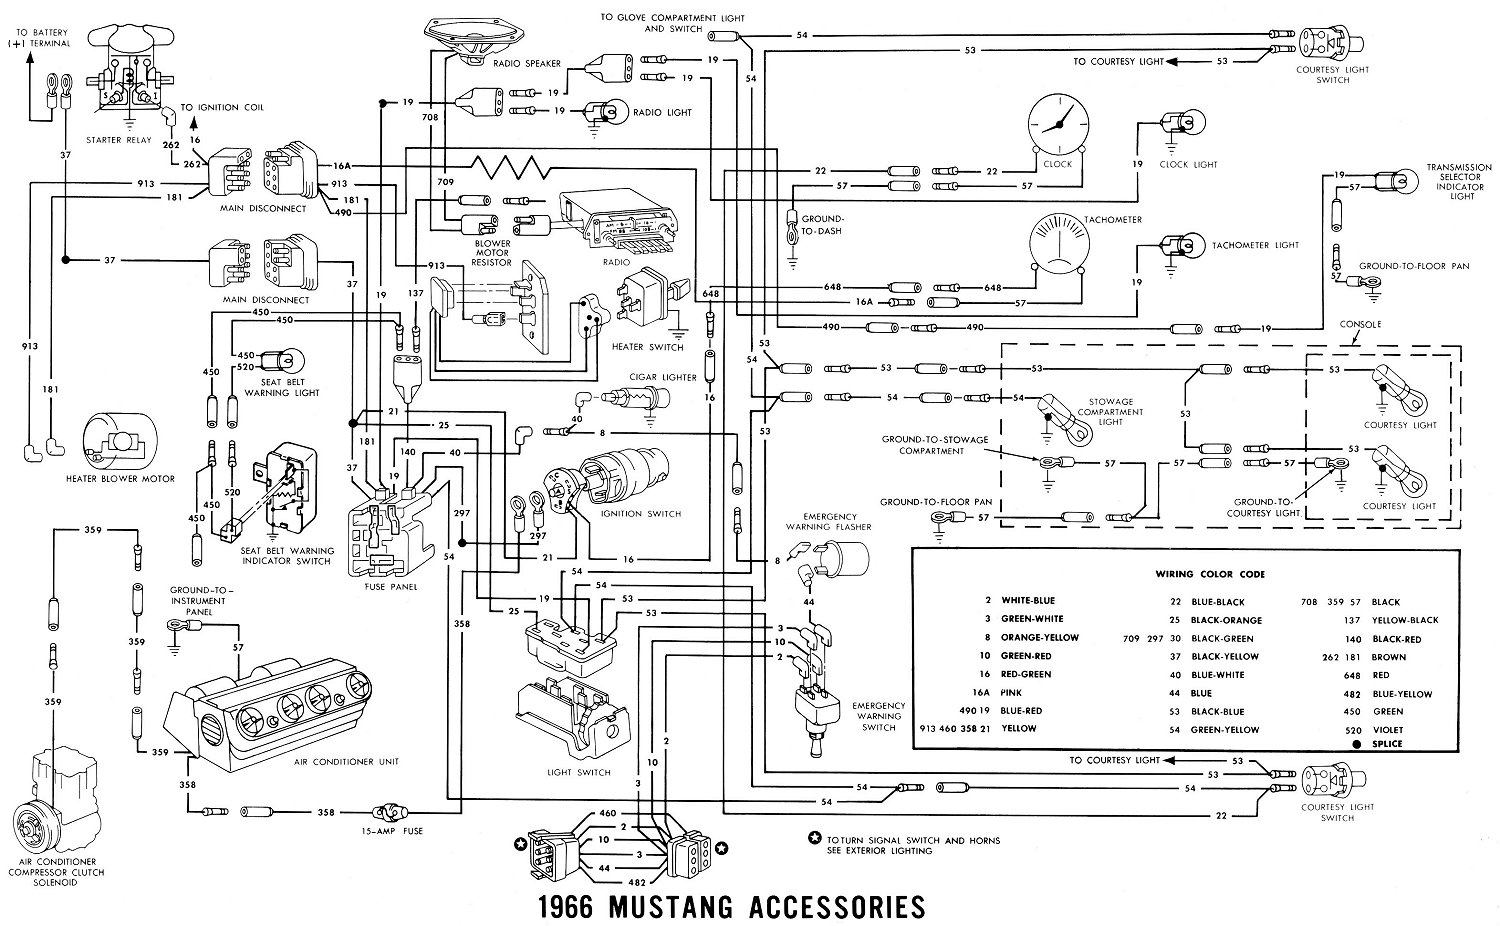 1966 Mustang Wiring Diagrams Average Joe Restoration 1960 Chevy Ignition Diagram Schematic